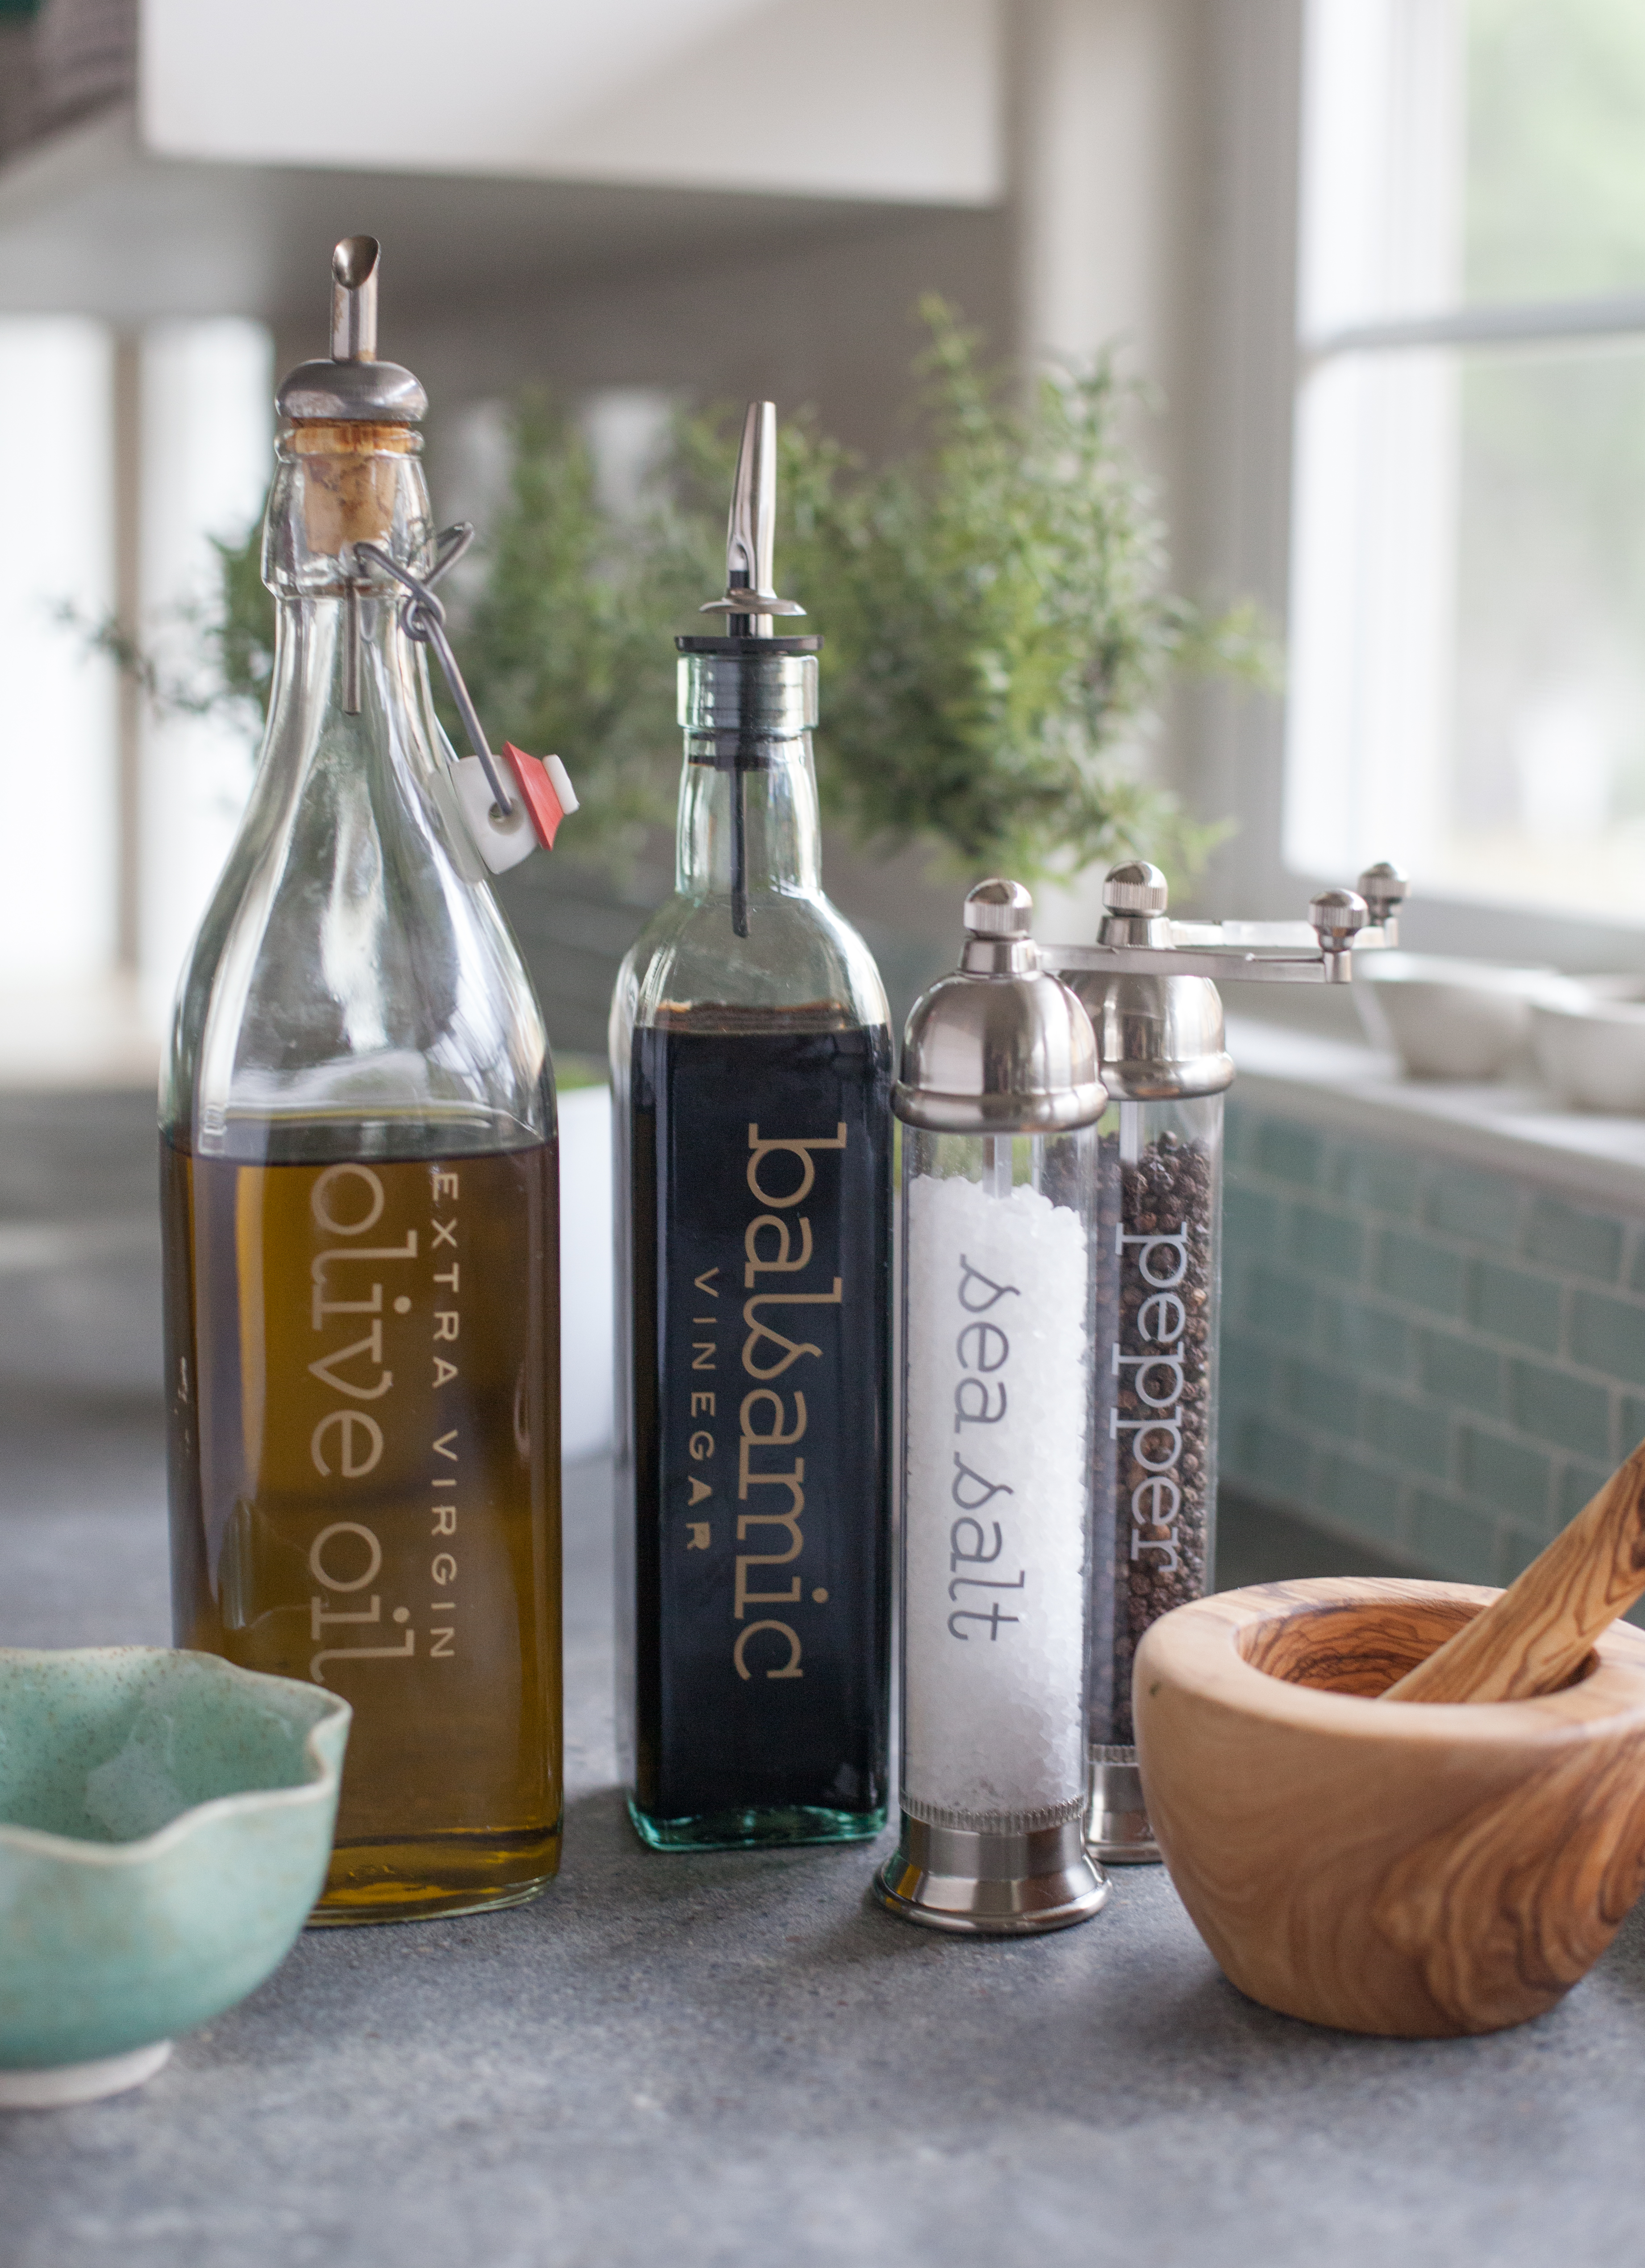 I Loved Giving These Olive Oil, Vinegar And Salt U0026 Pepper Grinders Our Own  Stamp Of Creativity. As Part Of Our Entry Into Cricutu0027s Design Star Space  ...